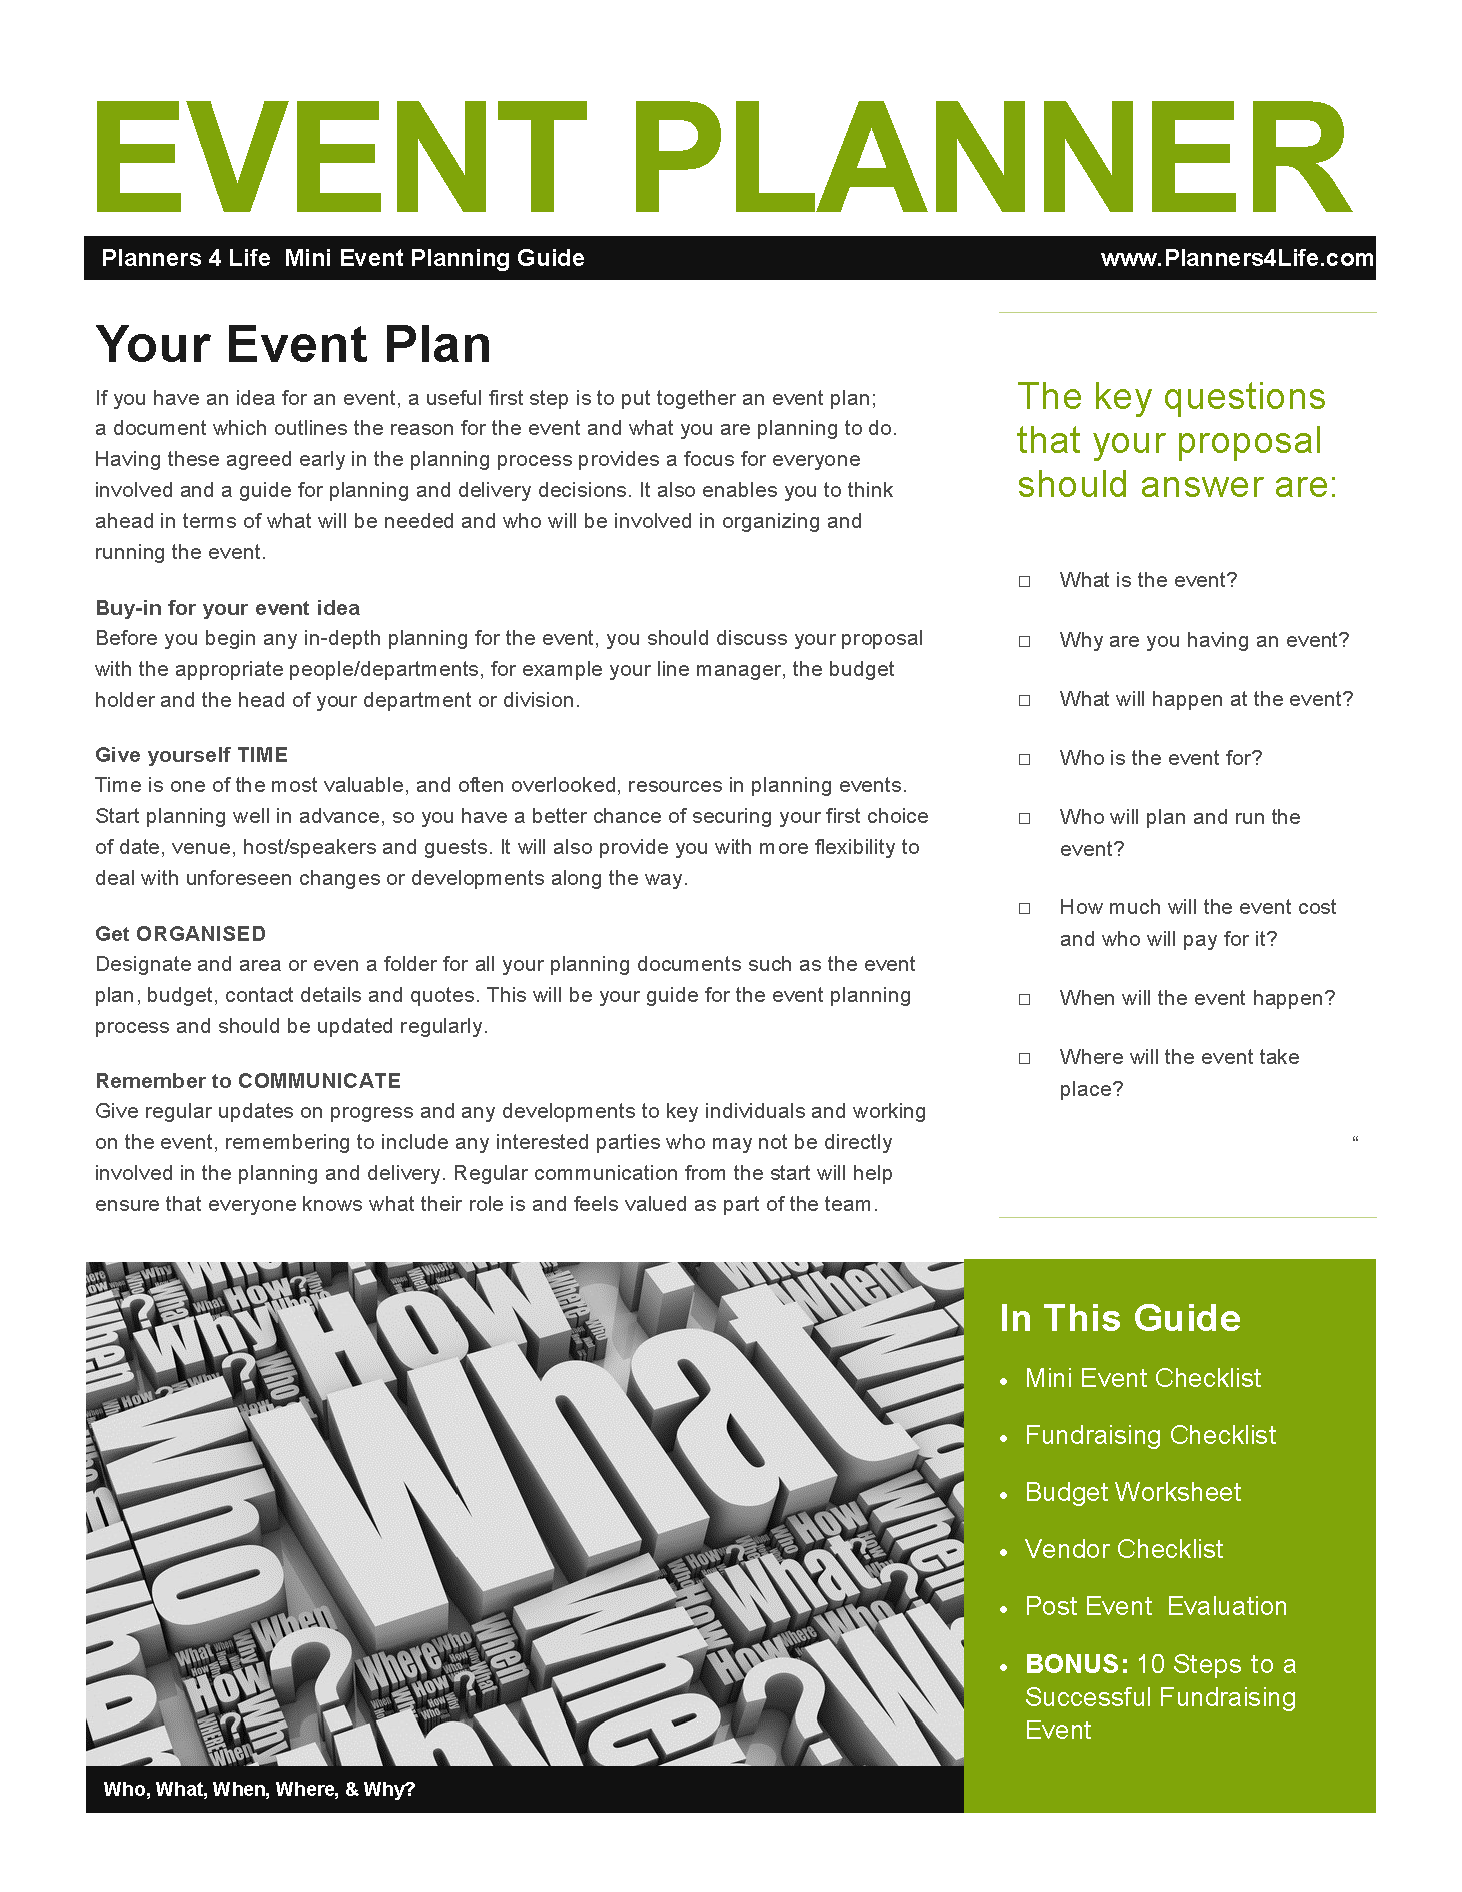 40045643611354 Mini Event Planning Guide Cover